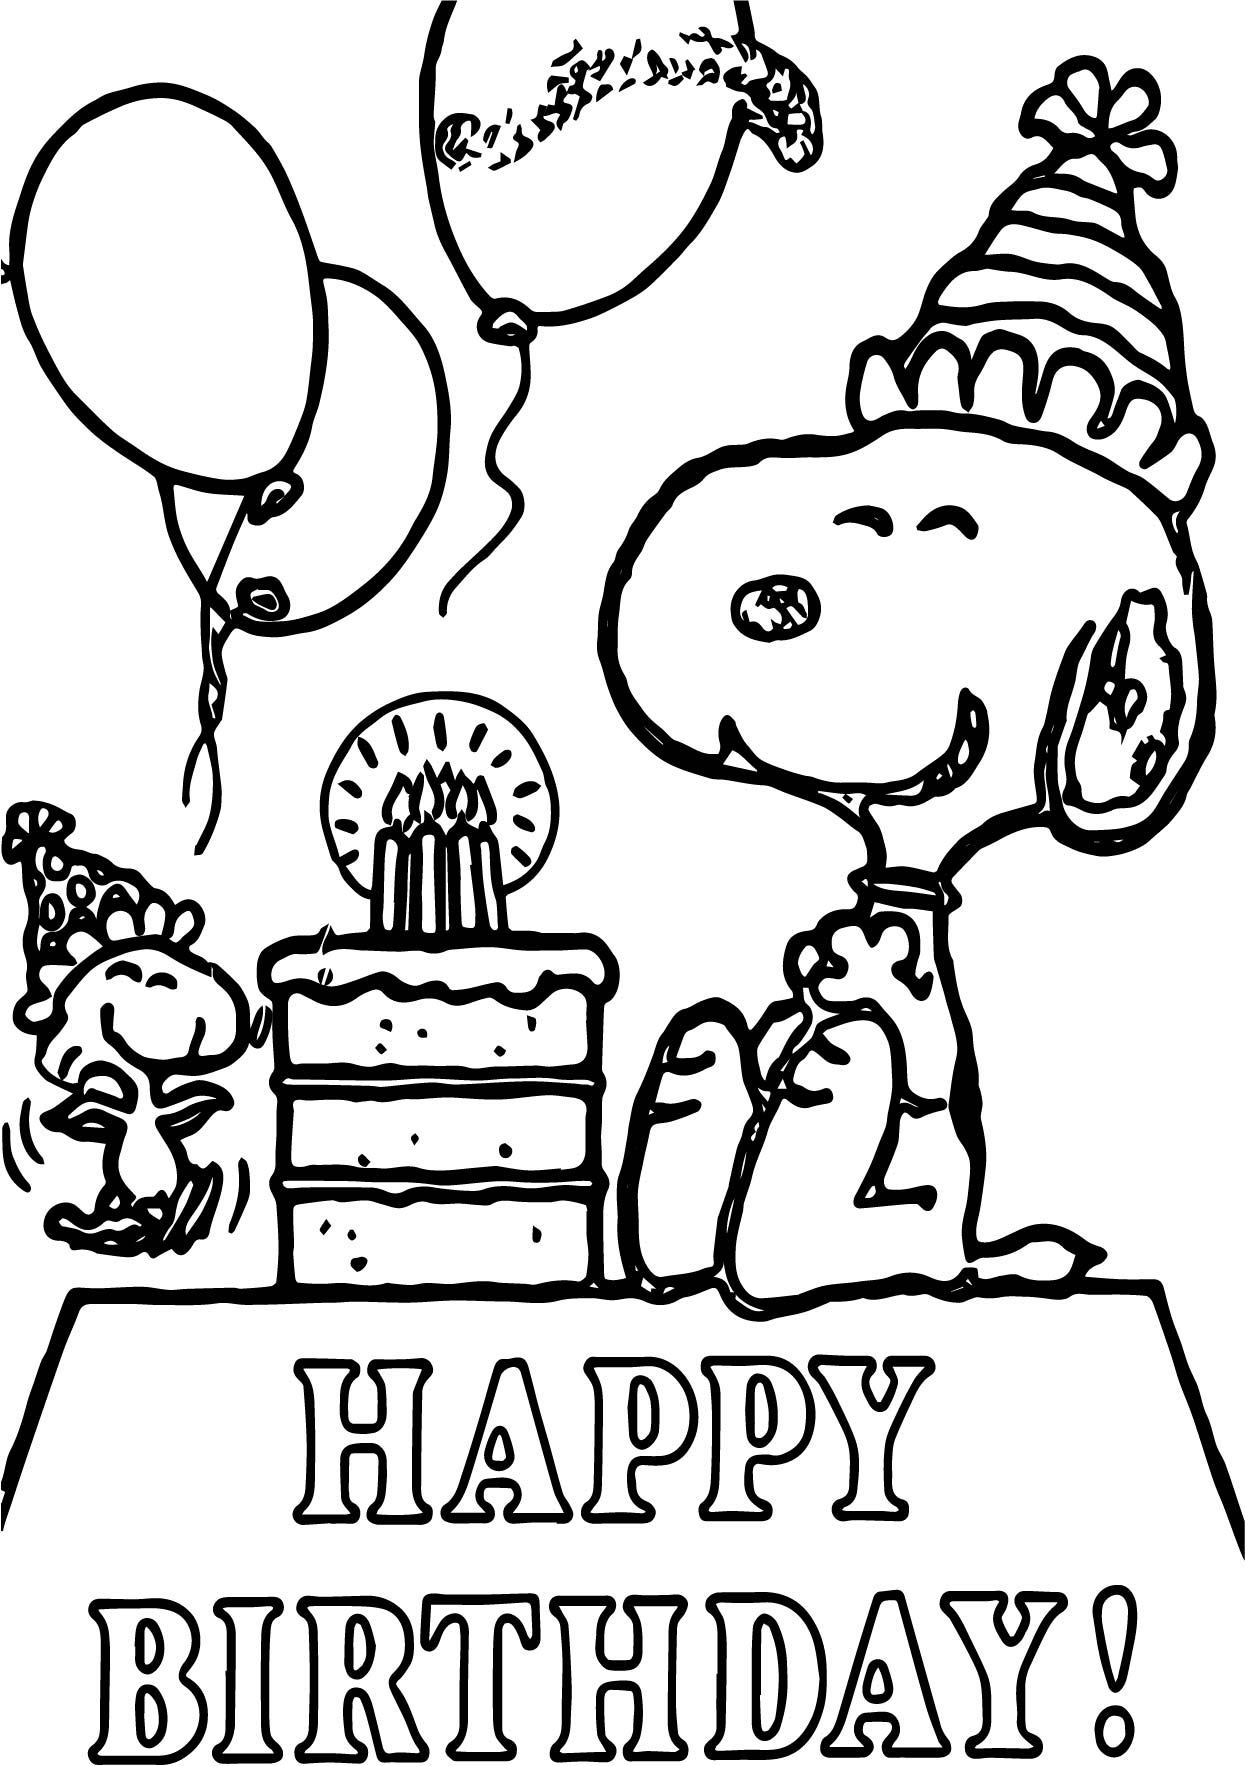 Snoopy Happy Birthday Quote Coloring Page | Wecoloringpage.com